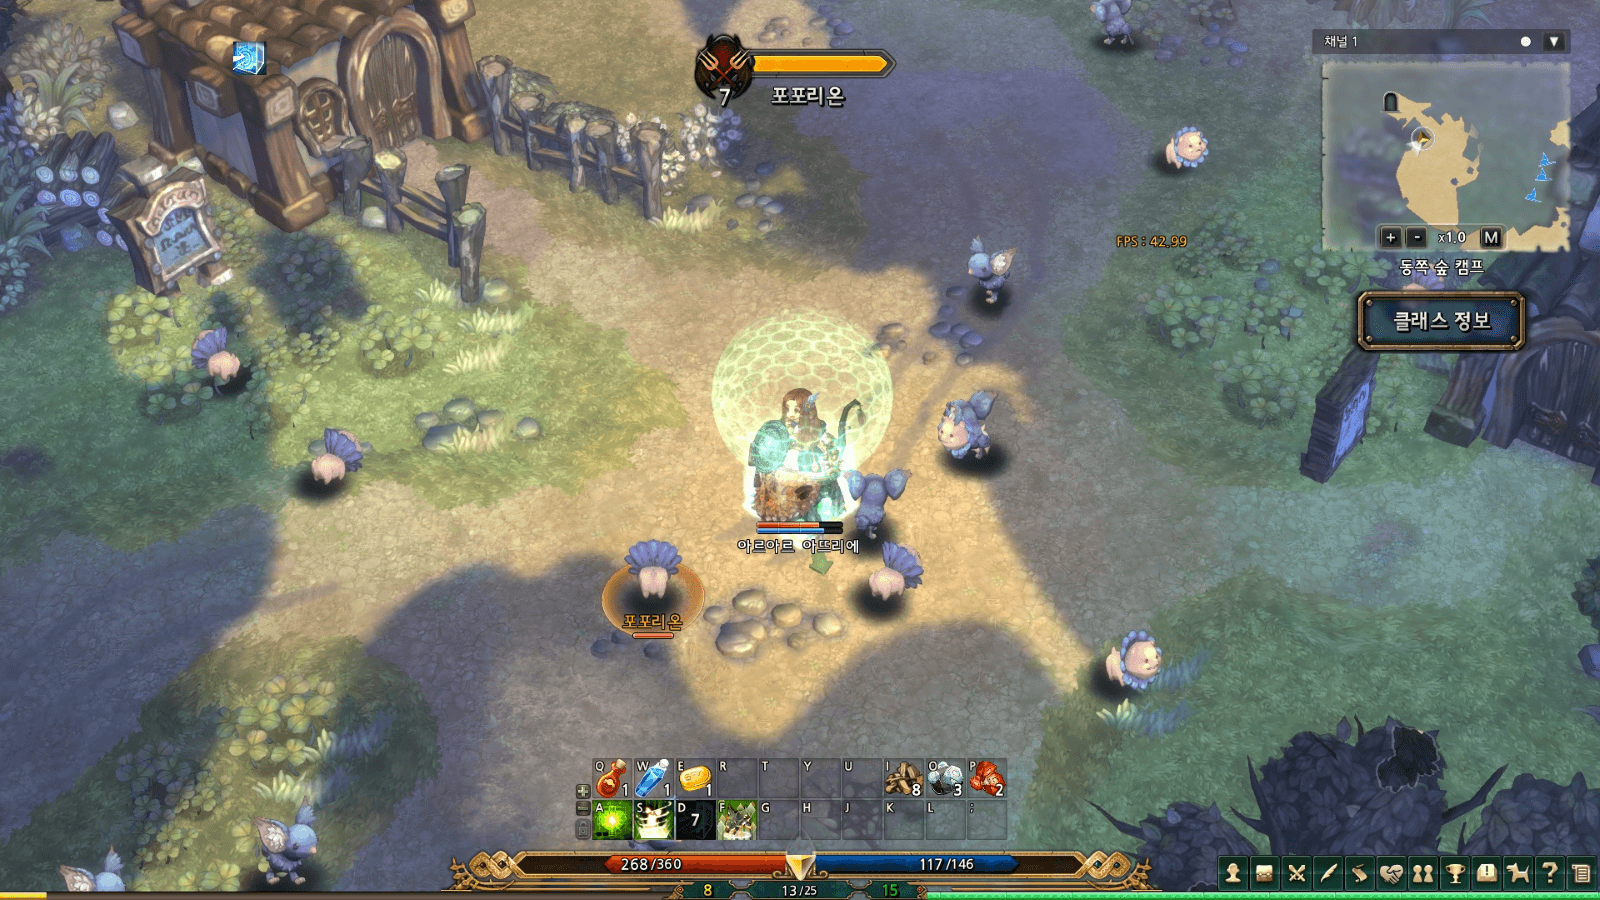 Tree of Savior Investigates Possible Steam Exploit